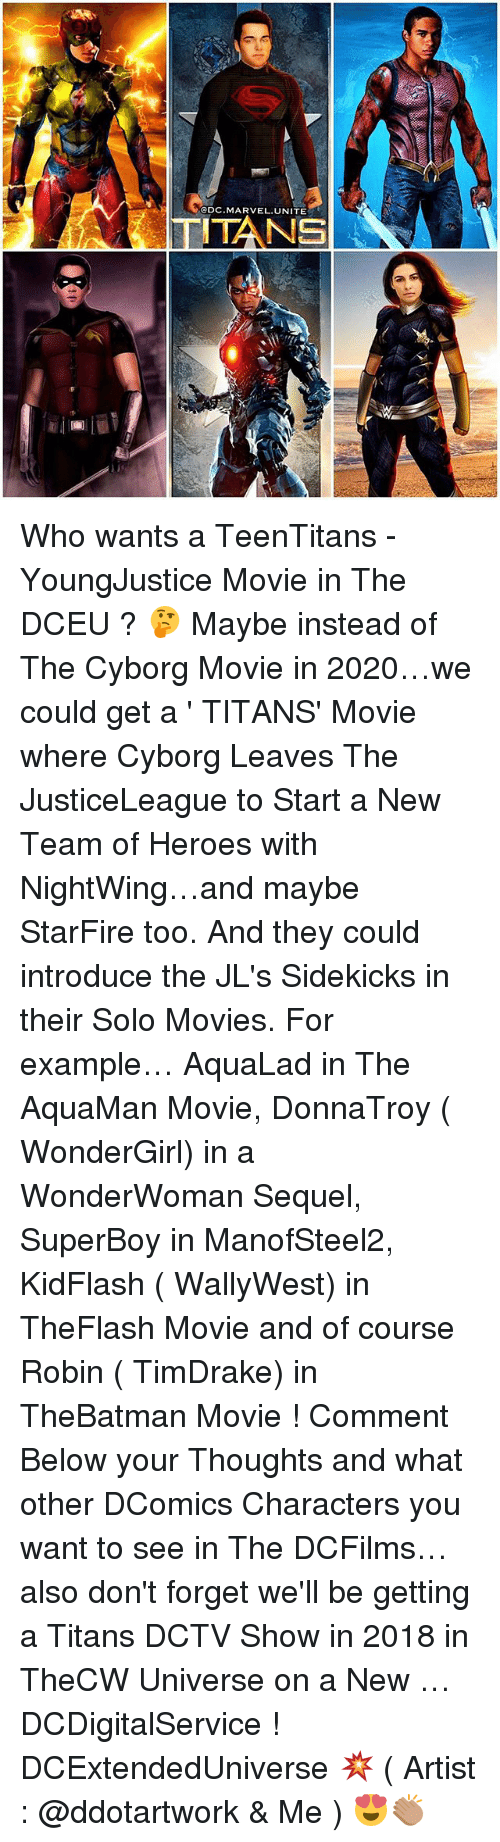 Memes, Movies, and Heroes: @DC,MARVEL, UNITE Who wants a TeenTitans - YoungJustice Movie in The DCEU ? 🤔 Maybe instead of The Cyborg Movie in 2020…we could get a ' TITANS' Movie where Cyborg Leaves The JusticeLeague to Start a New Team of Heroes with NightWing…and maybe StarFire too. And they could introduce the JL's Sidekicks in their Solo Movies. For example… AquaLad in The AquaMan Movie, DonnaTroy ( WonderGirl) in a WonderWoman Sequel, SuperBoy in ManofSteel2, KidFlash ( WallyWest) in TheFlash Movie and of course Robin ( TimDrake) in TheBatman Movie ! Comment Below your Thoughts and what other DComics Characters you want to see in The DCFilms…also don't forget we'll be getting a Titans DCTV Show in 2018 in TheCW Universe on a New … DCDigitalService ! DCExtendedUniverse 💥 ( Artist : @ddotartwork & Me ) 😍👏🏽